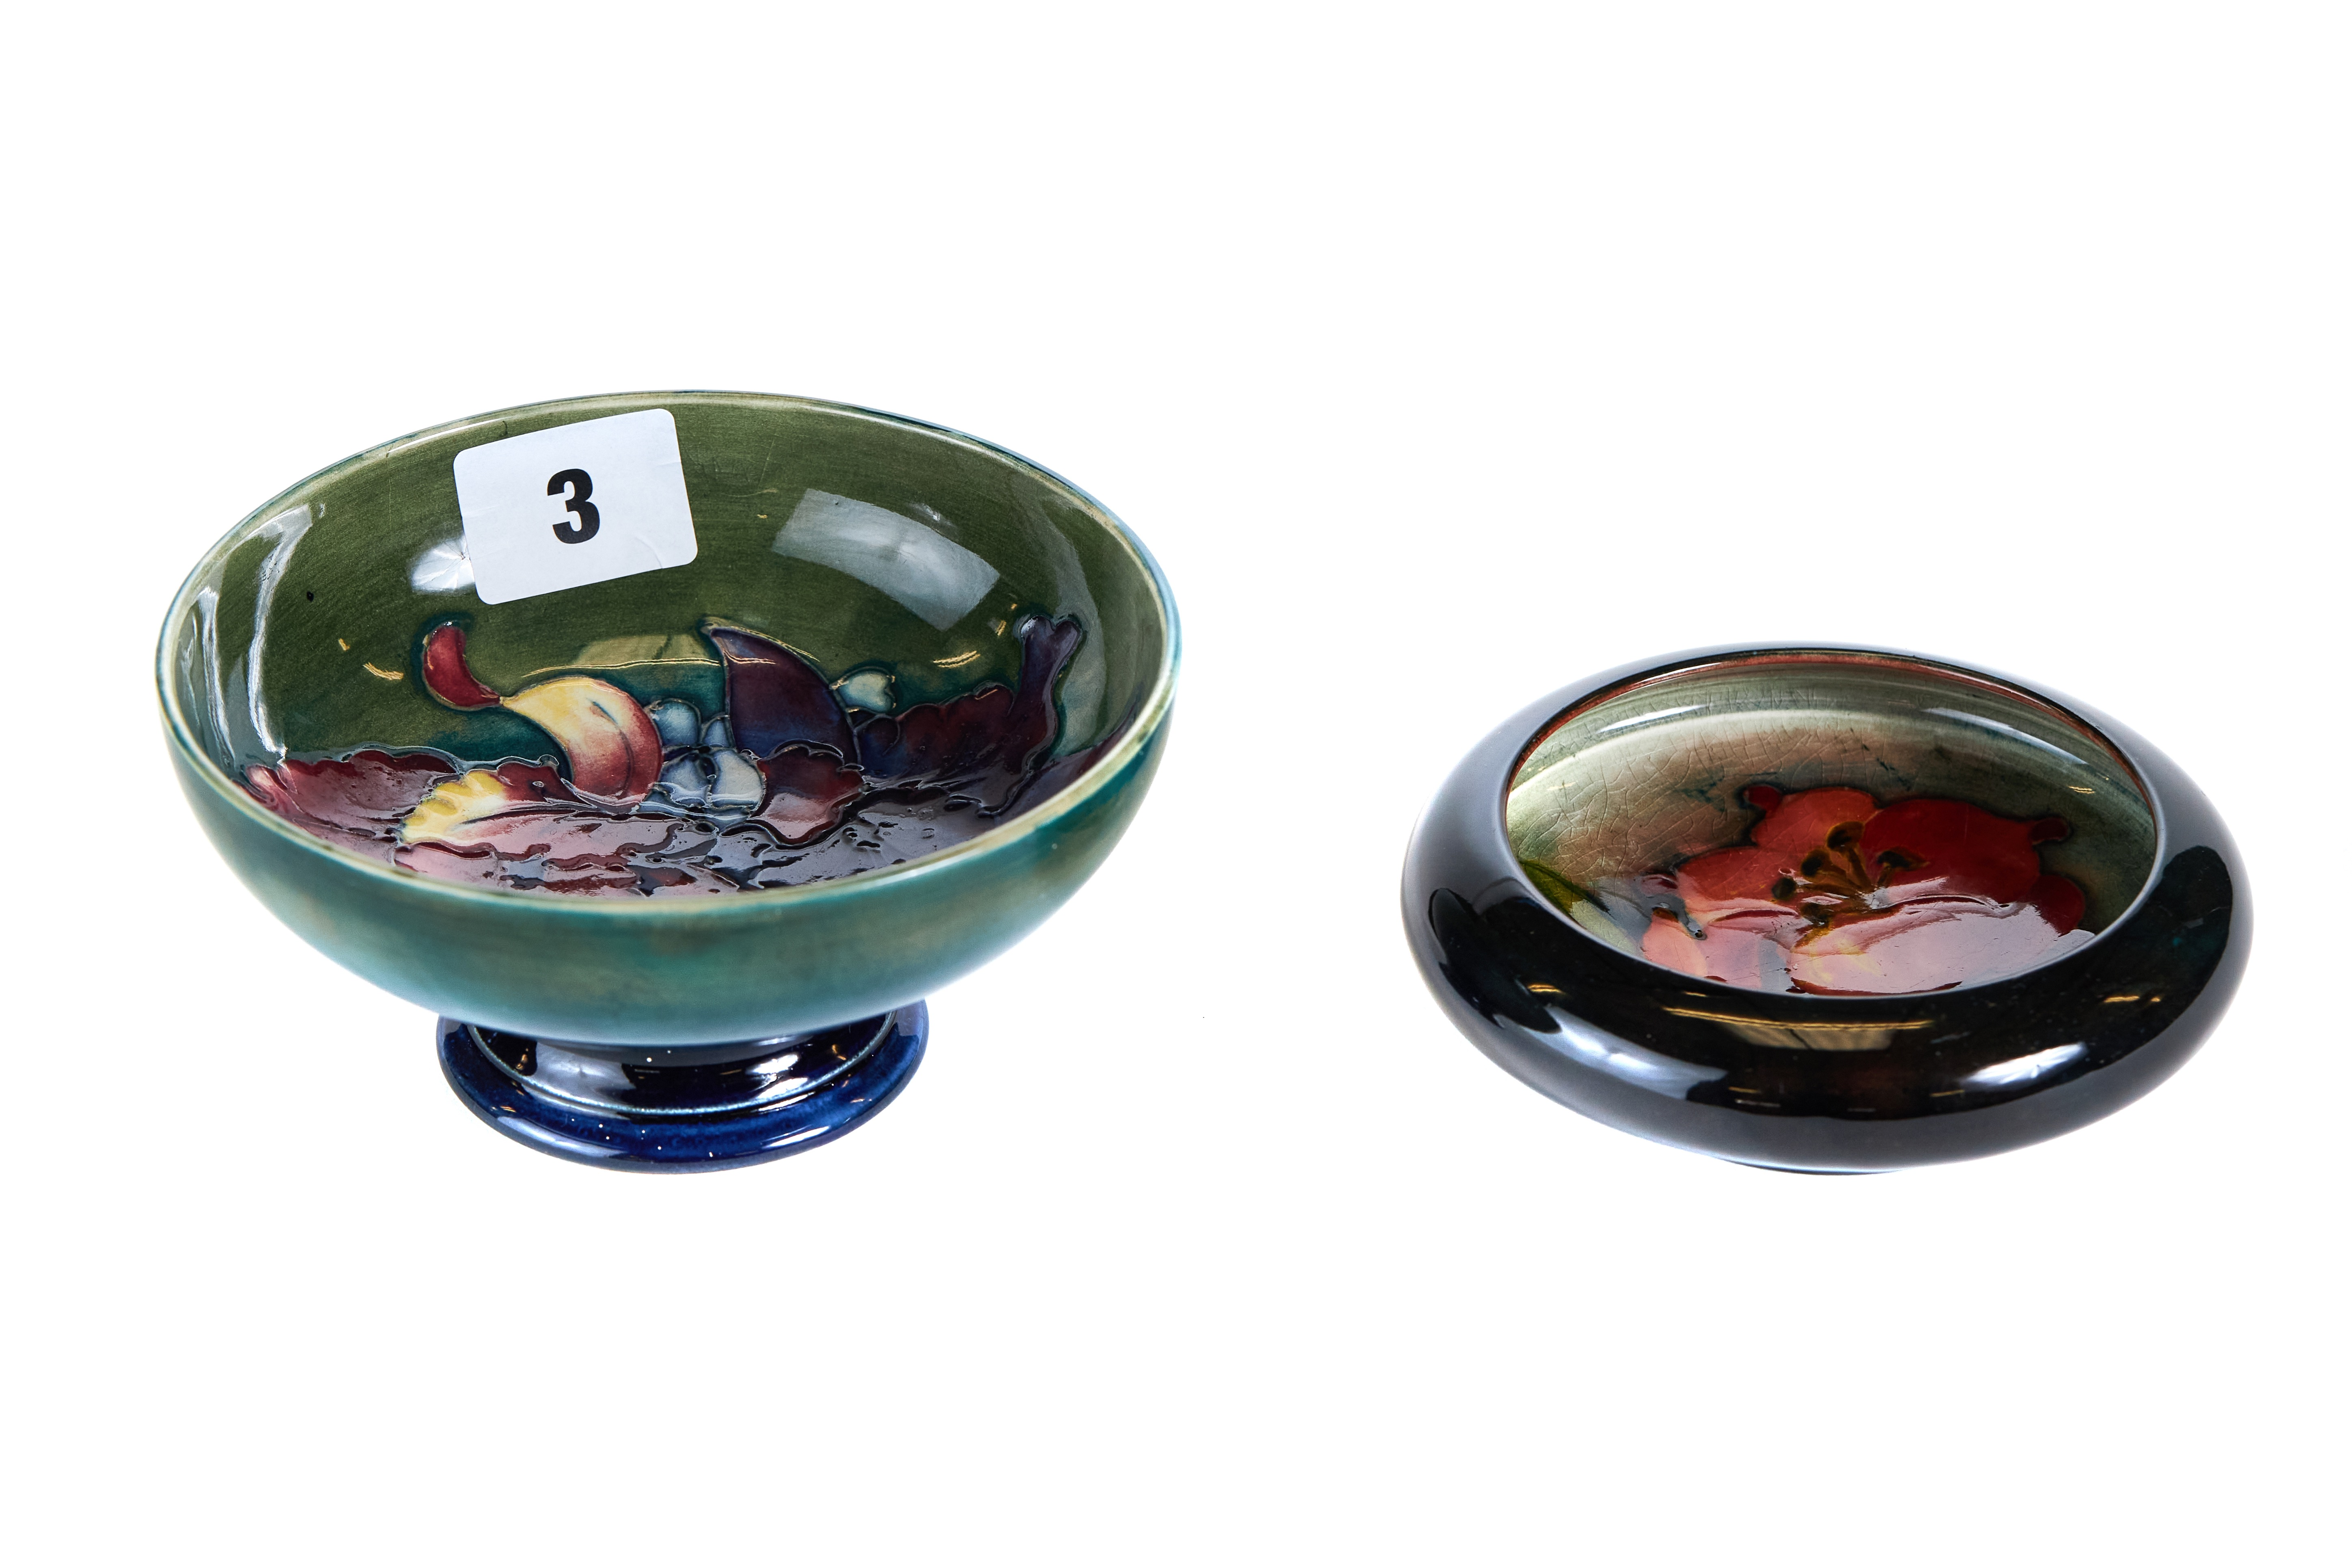 Lot 3 - A 20TH CENTURY MOORCROFT POTTERY GREEN GLAZED PEDESTAL BOWL internally decorated with flowers,